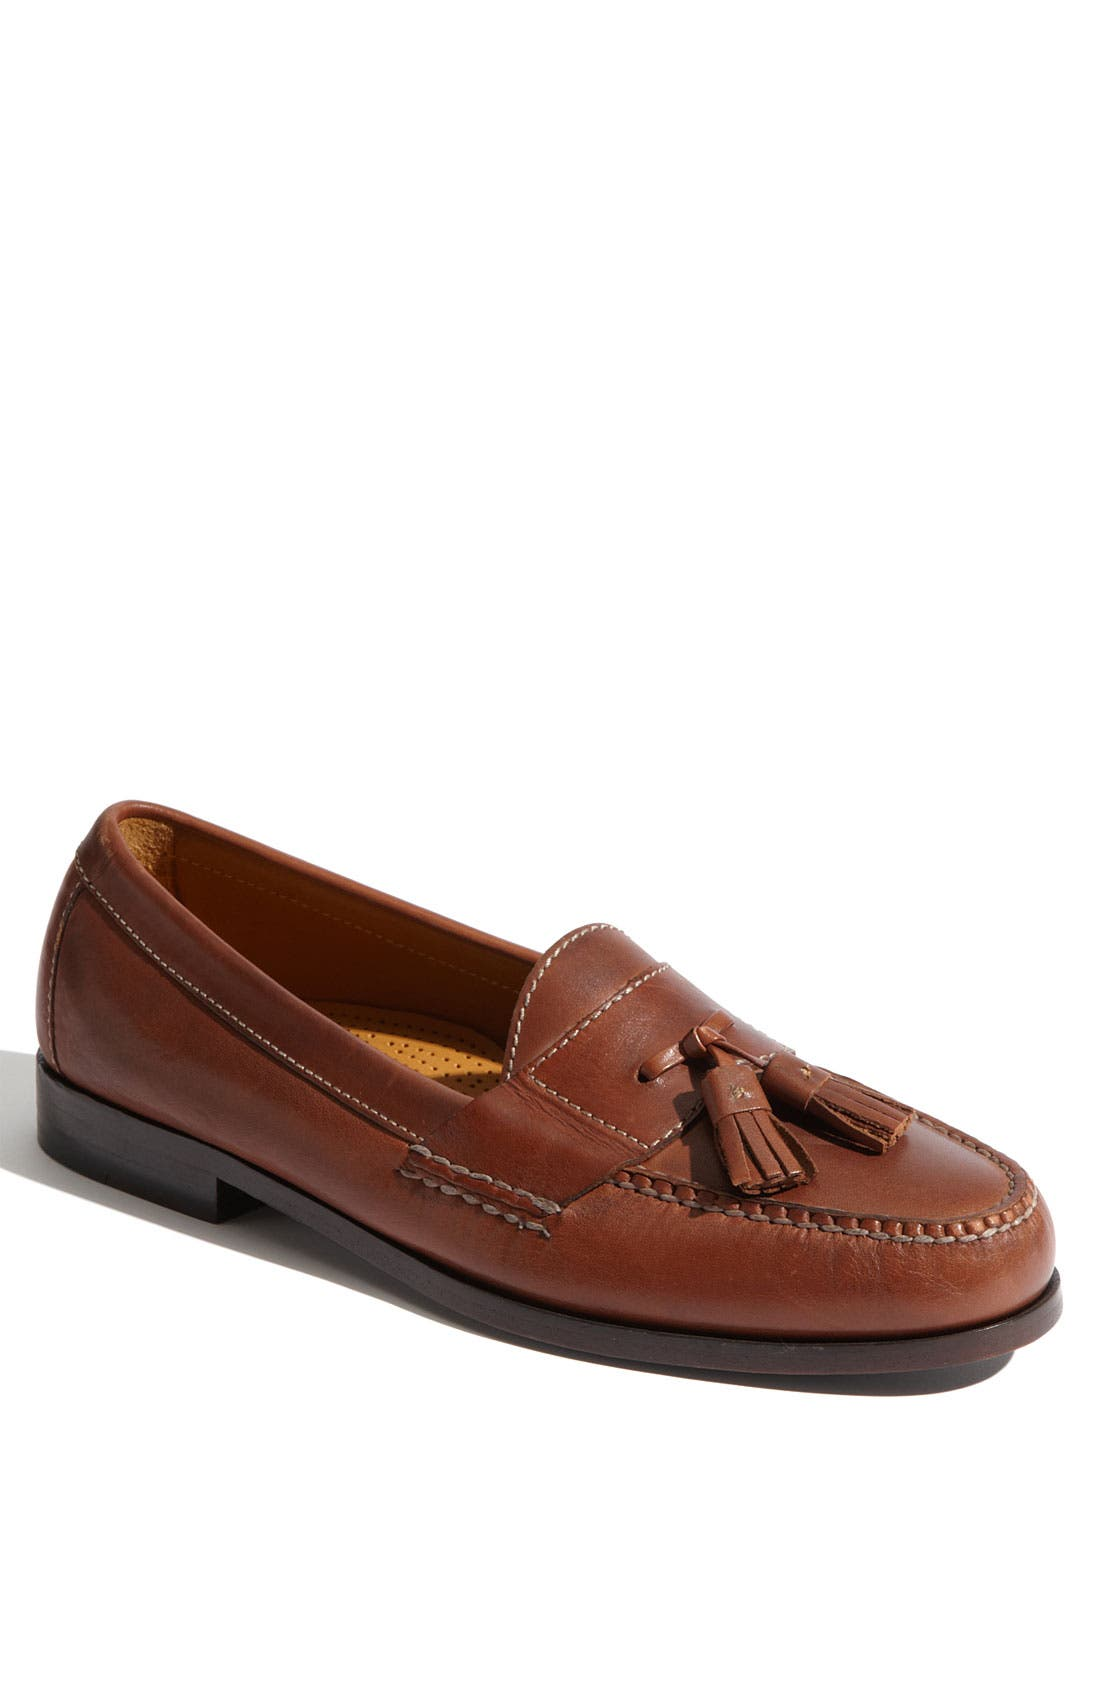 Main Image - Cole Haan 'Pinch Tassel' Loafer (Online Only)   (Men)